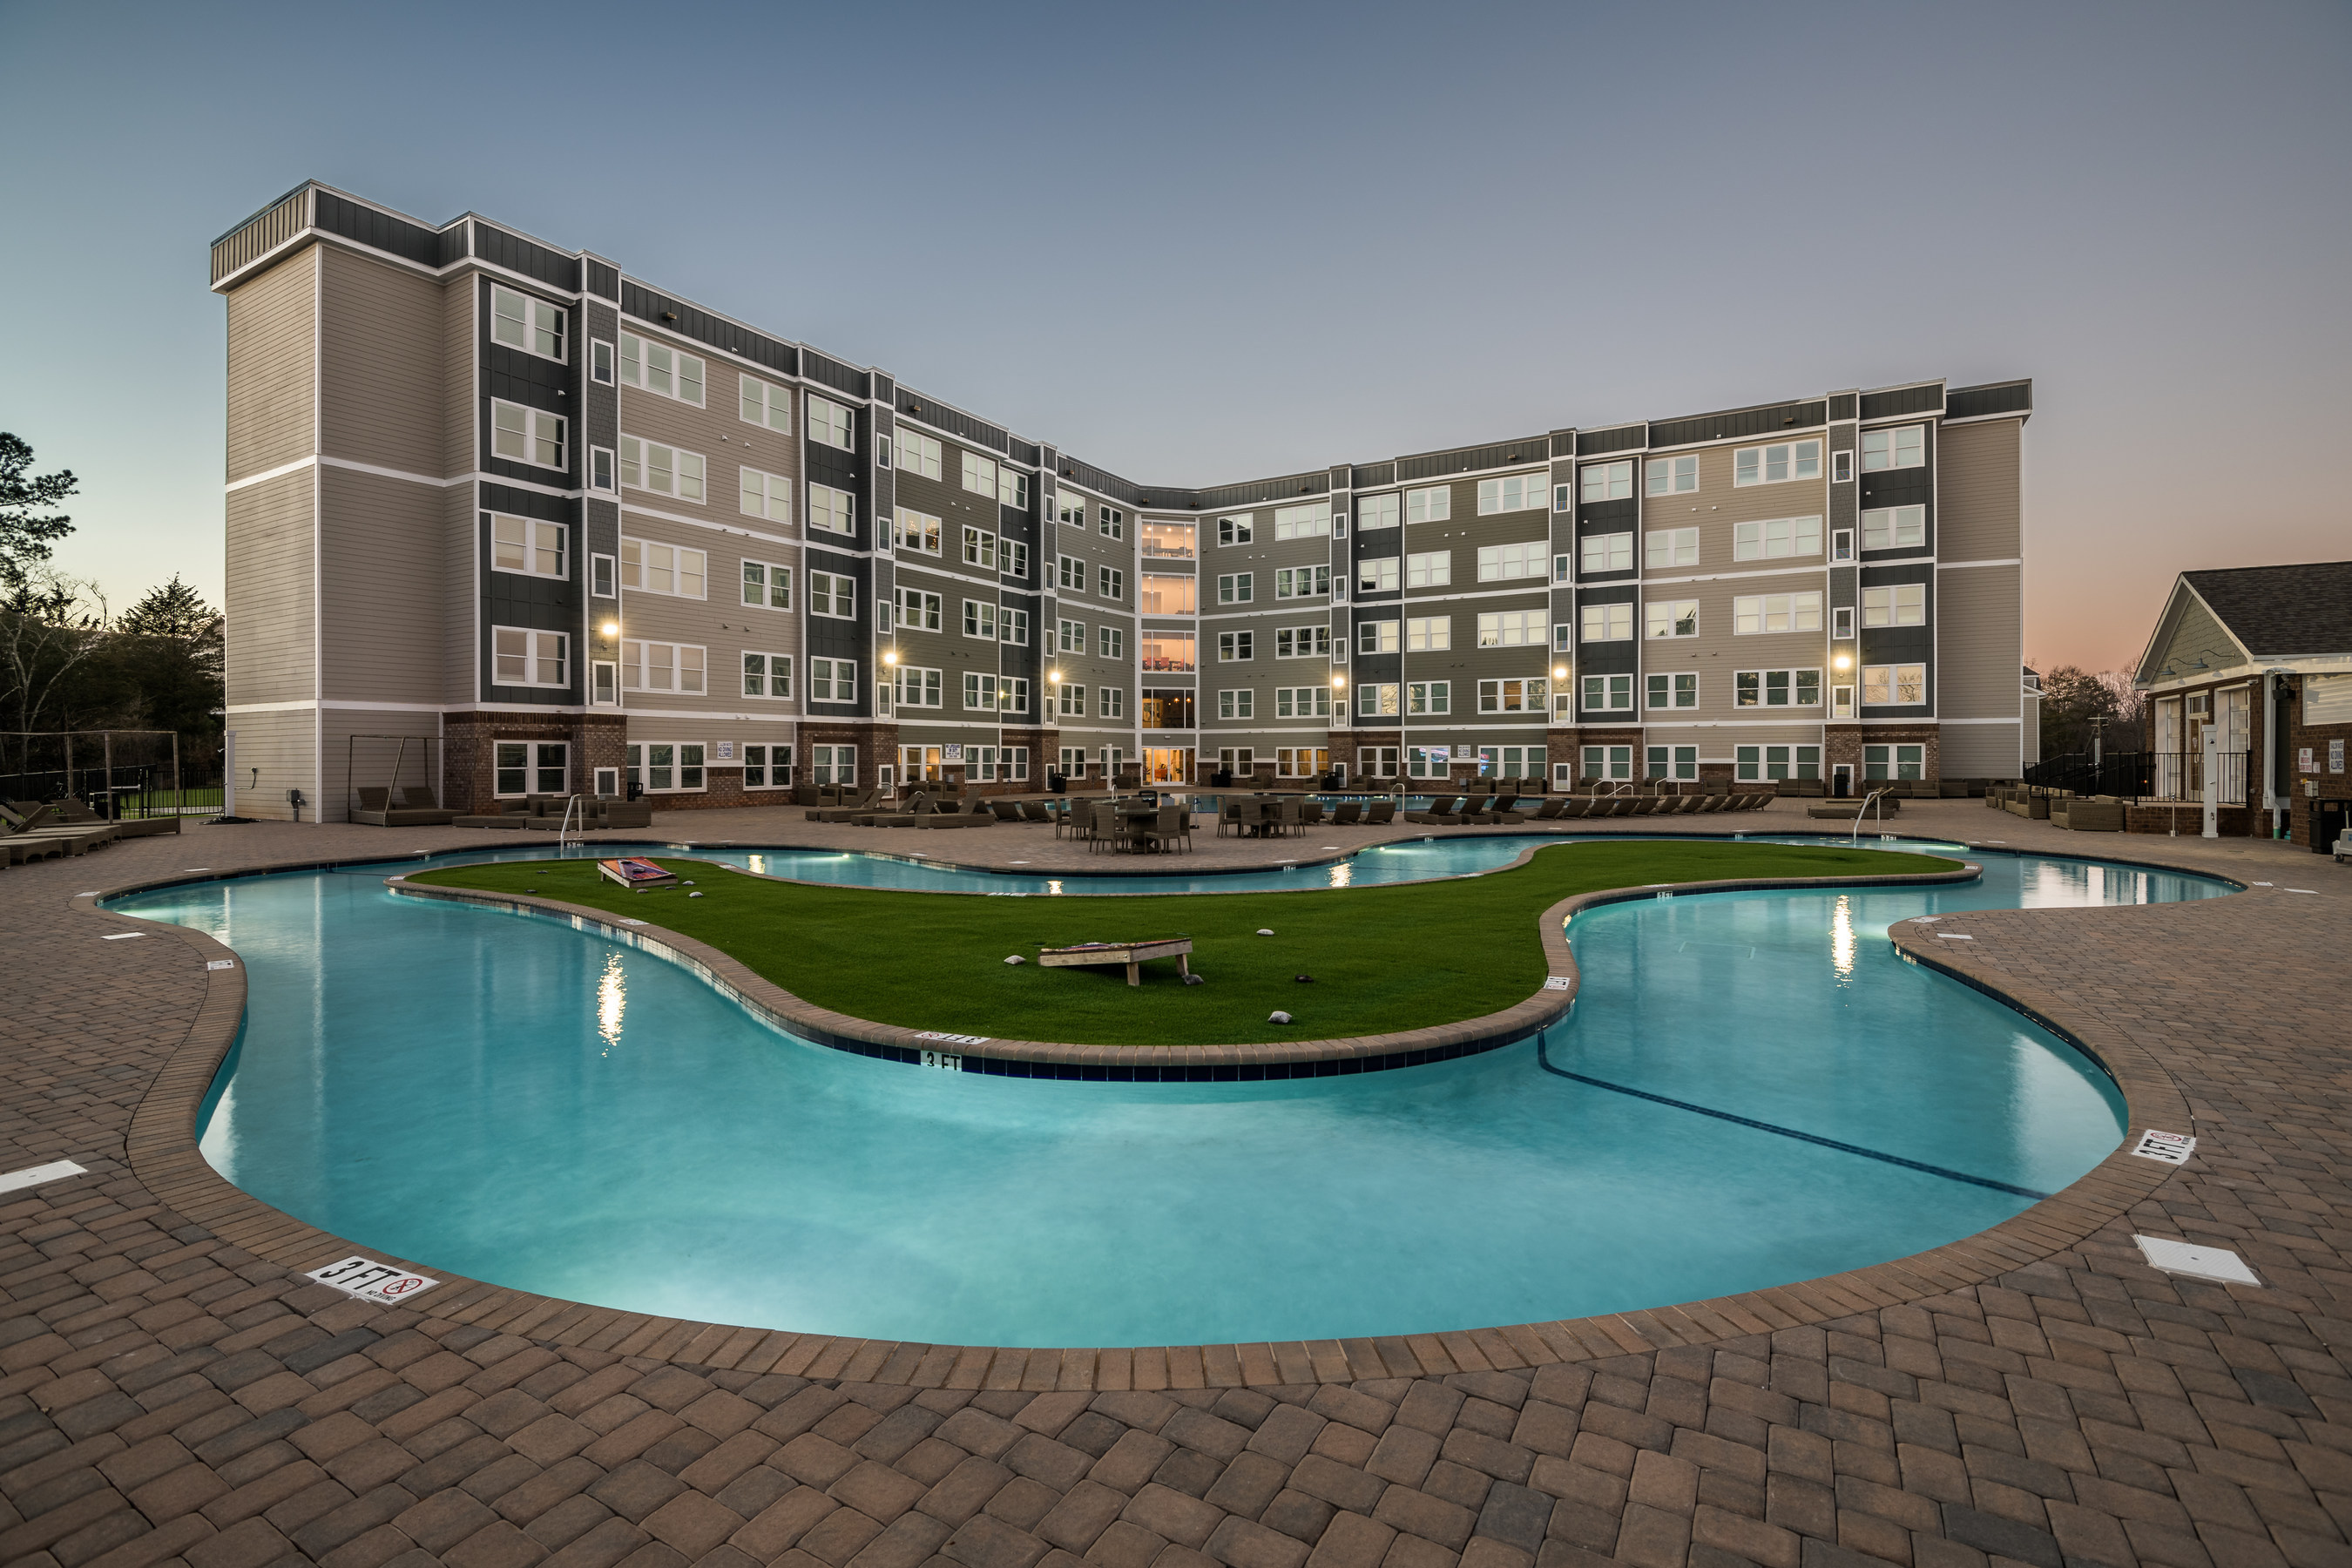 Multiversity Housing Partners Acquires 616-Unit Student Housing Community Near Clemson University Campus